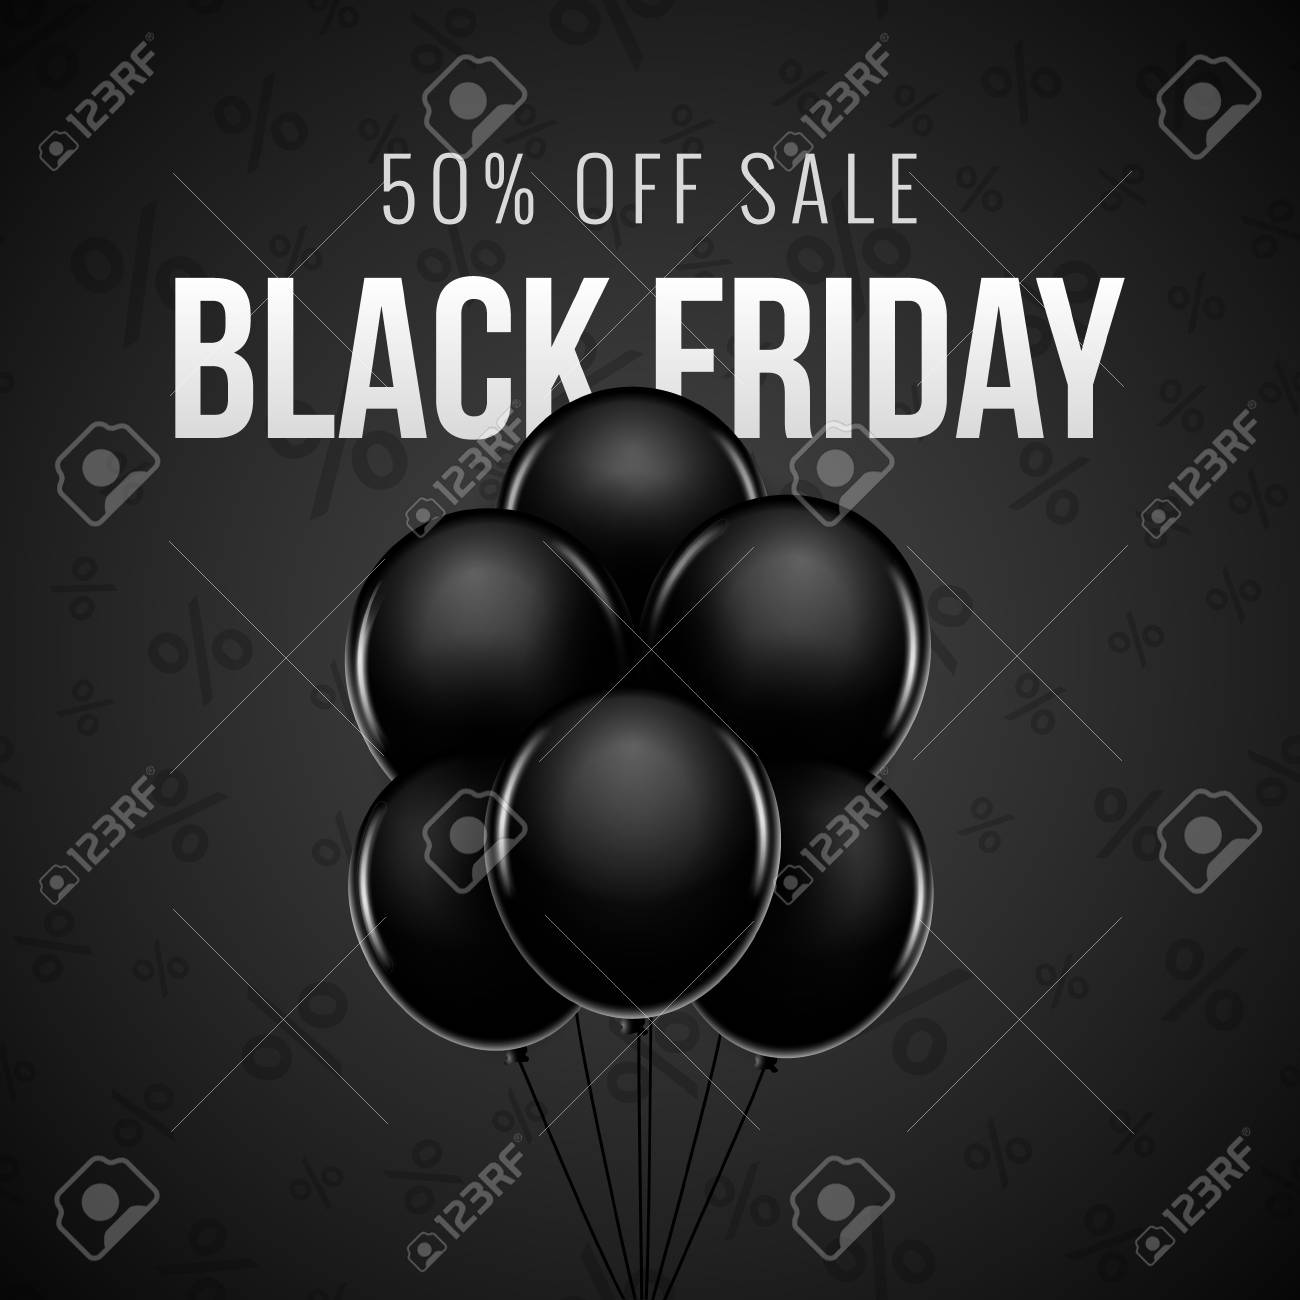 Black Friday Rabatt Black Friday Verkaufsbündelballon Dekorations Hintergrunddesign Vektor Ballon Rabatt Banner